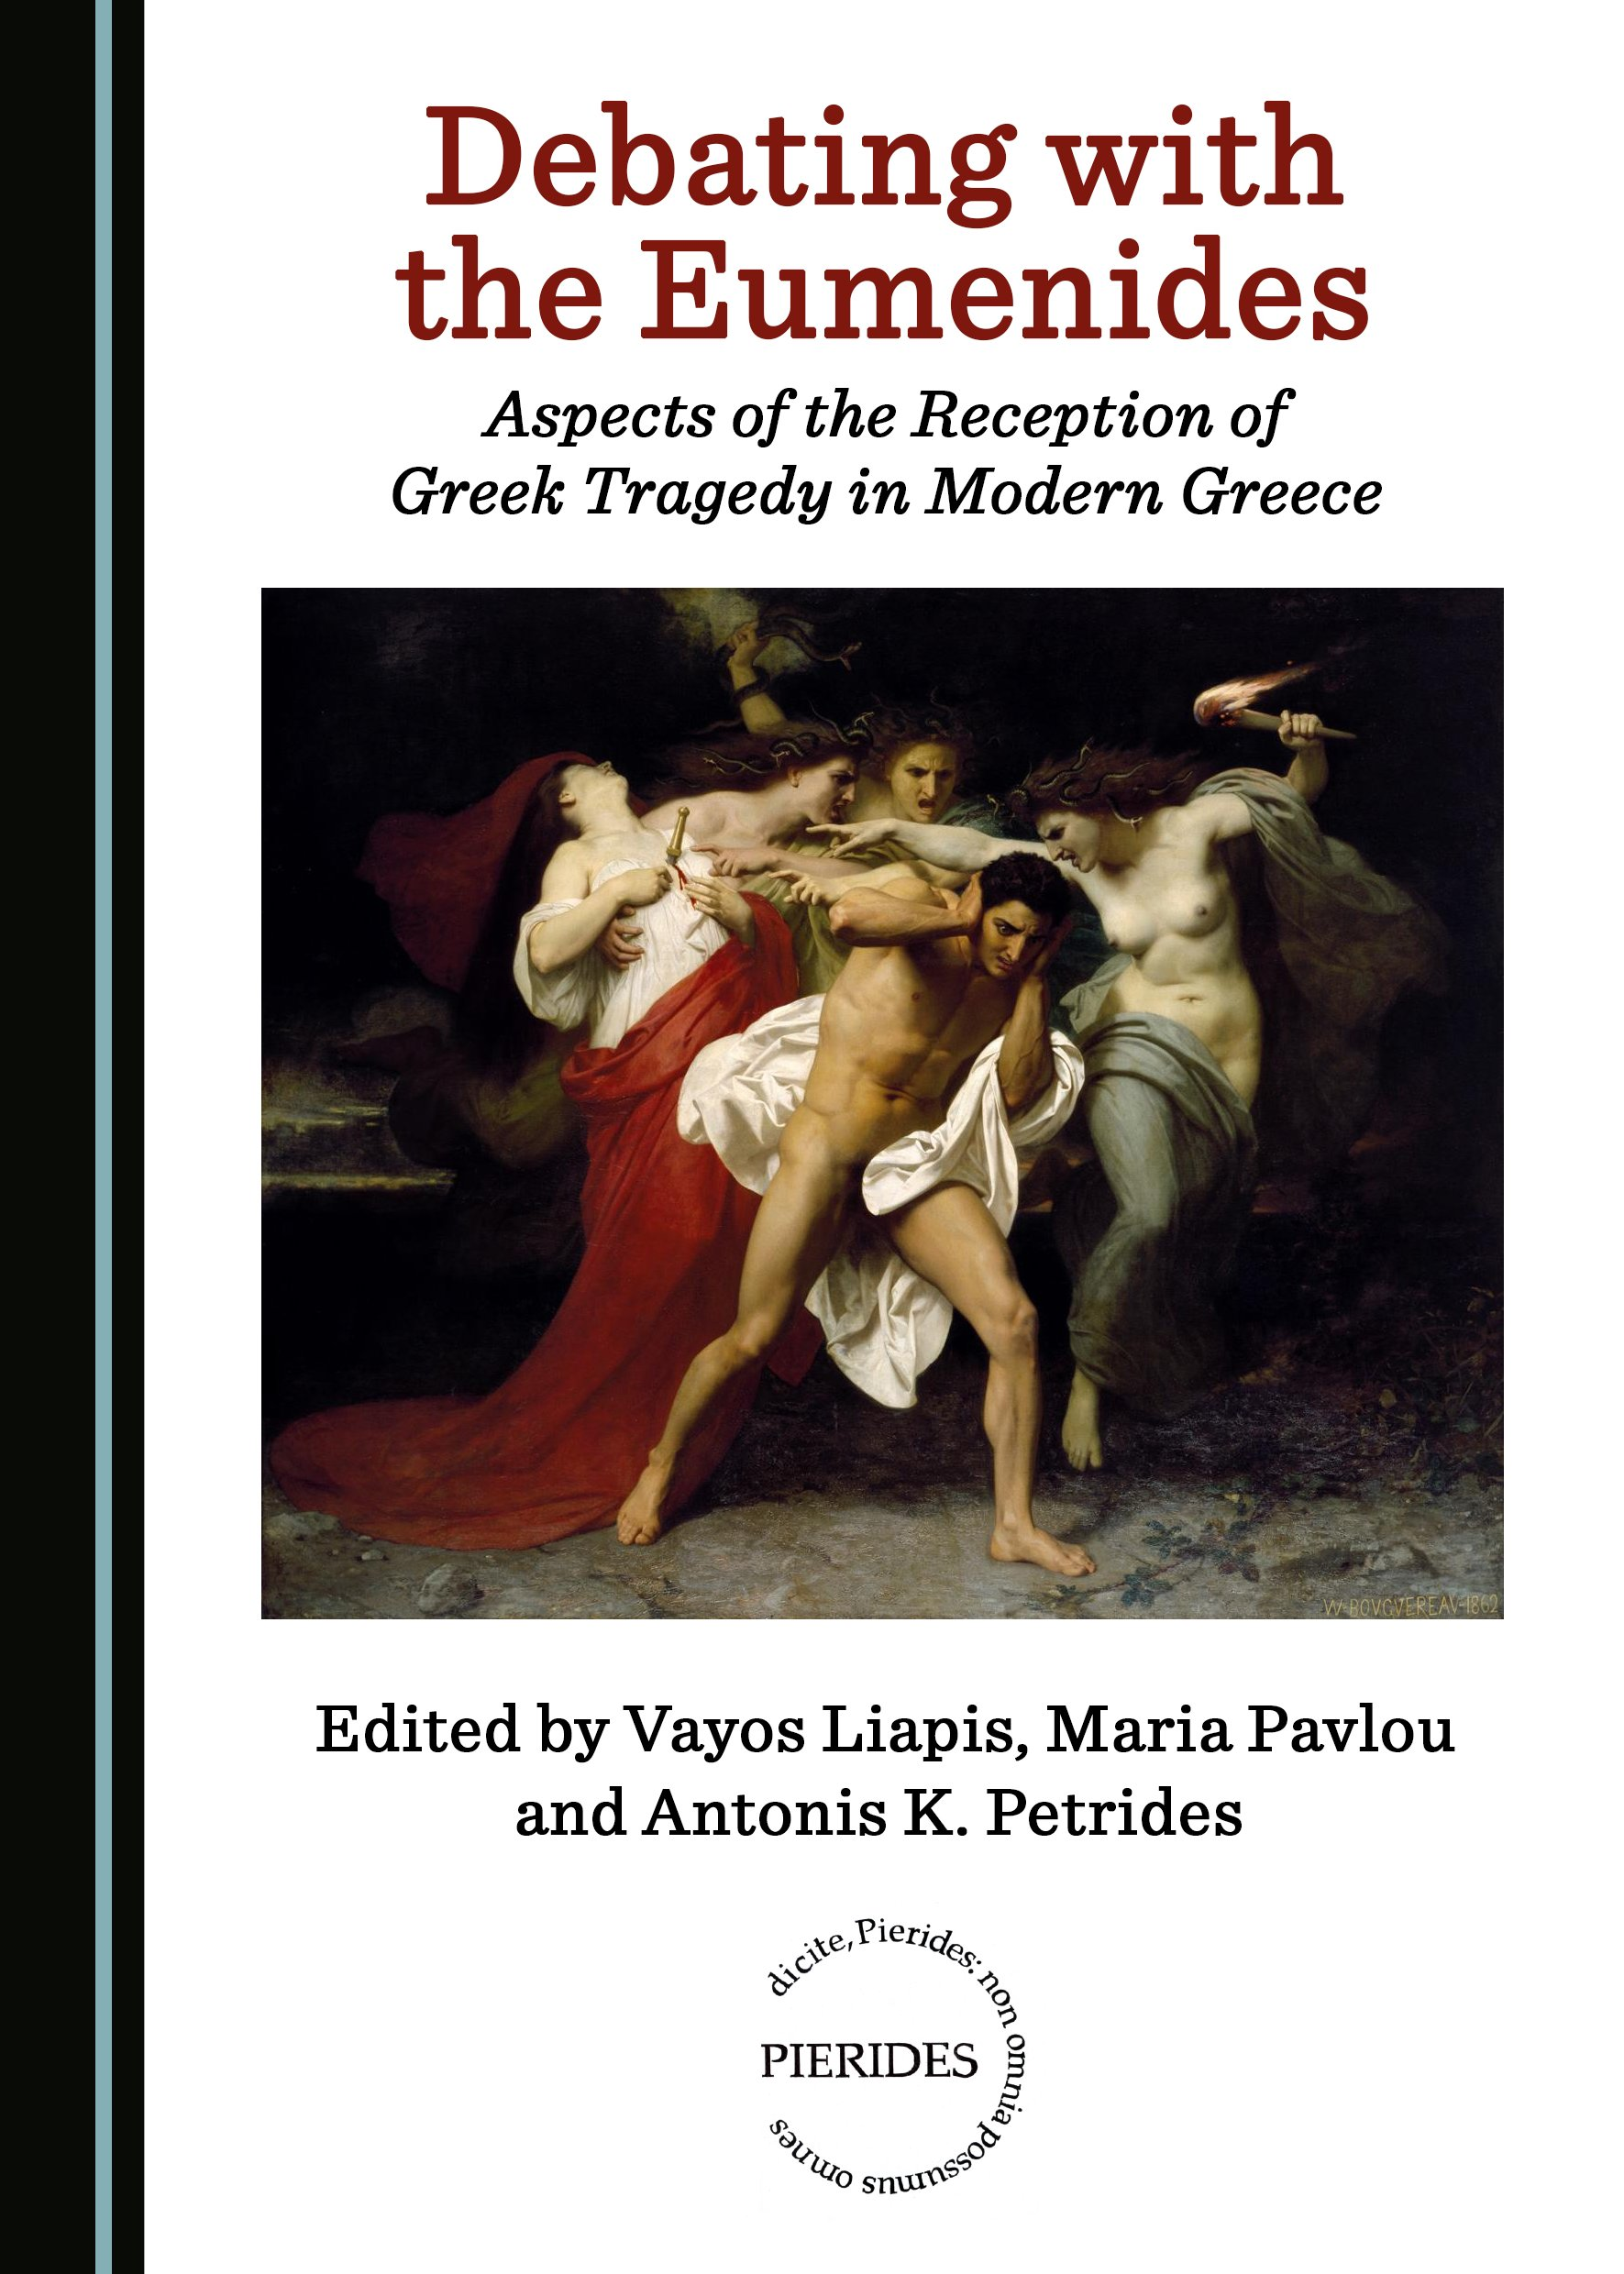 Debating with the Eumenides: Aspects of the Reception of Greek Tragedy in Modern Greece